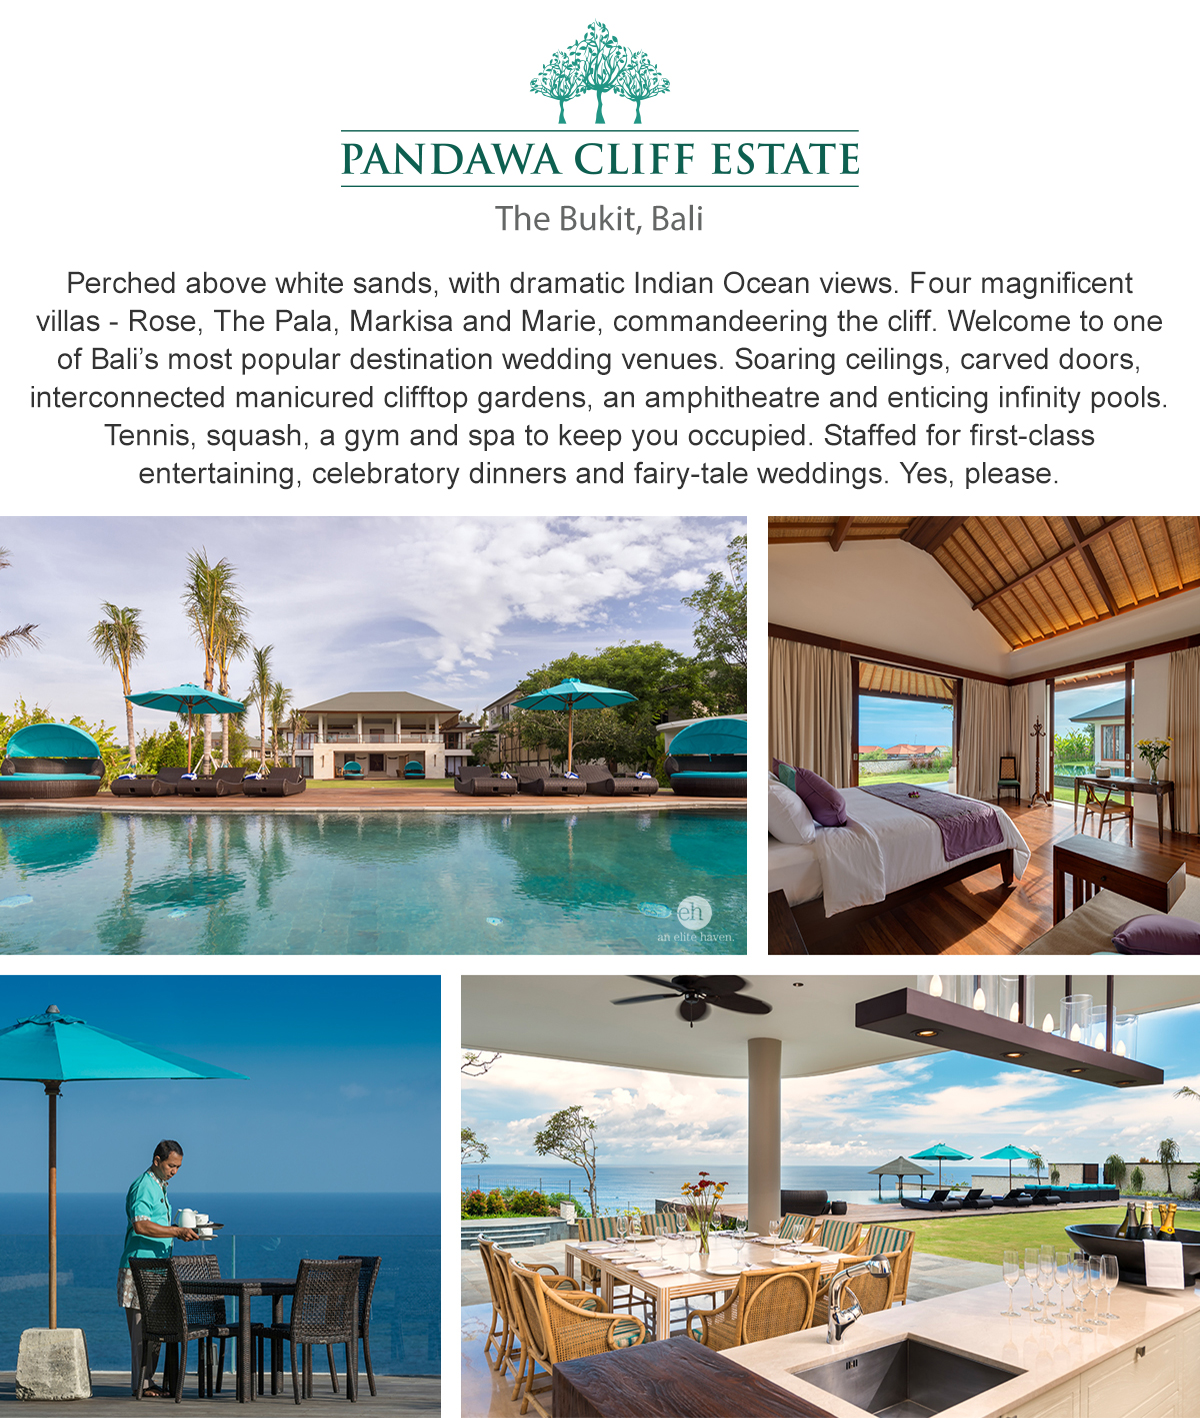 Pandawa Cliff Estate - The Bukit, Bali